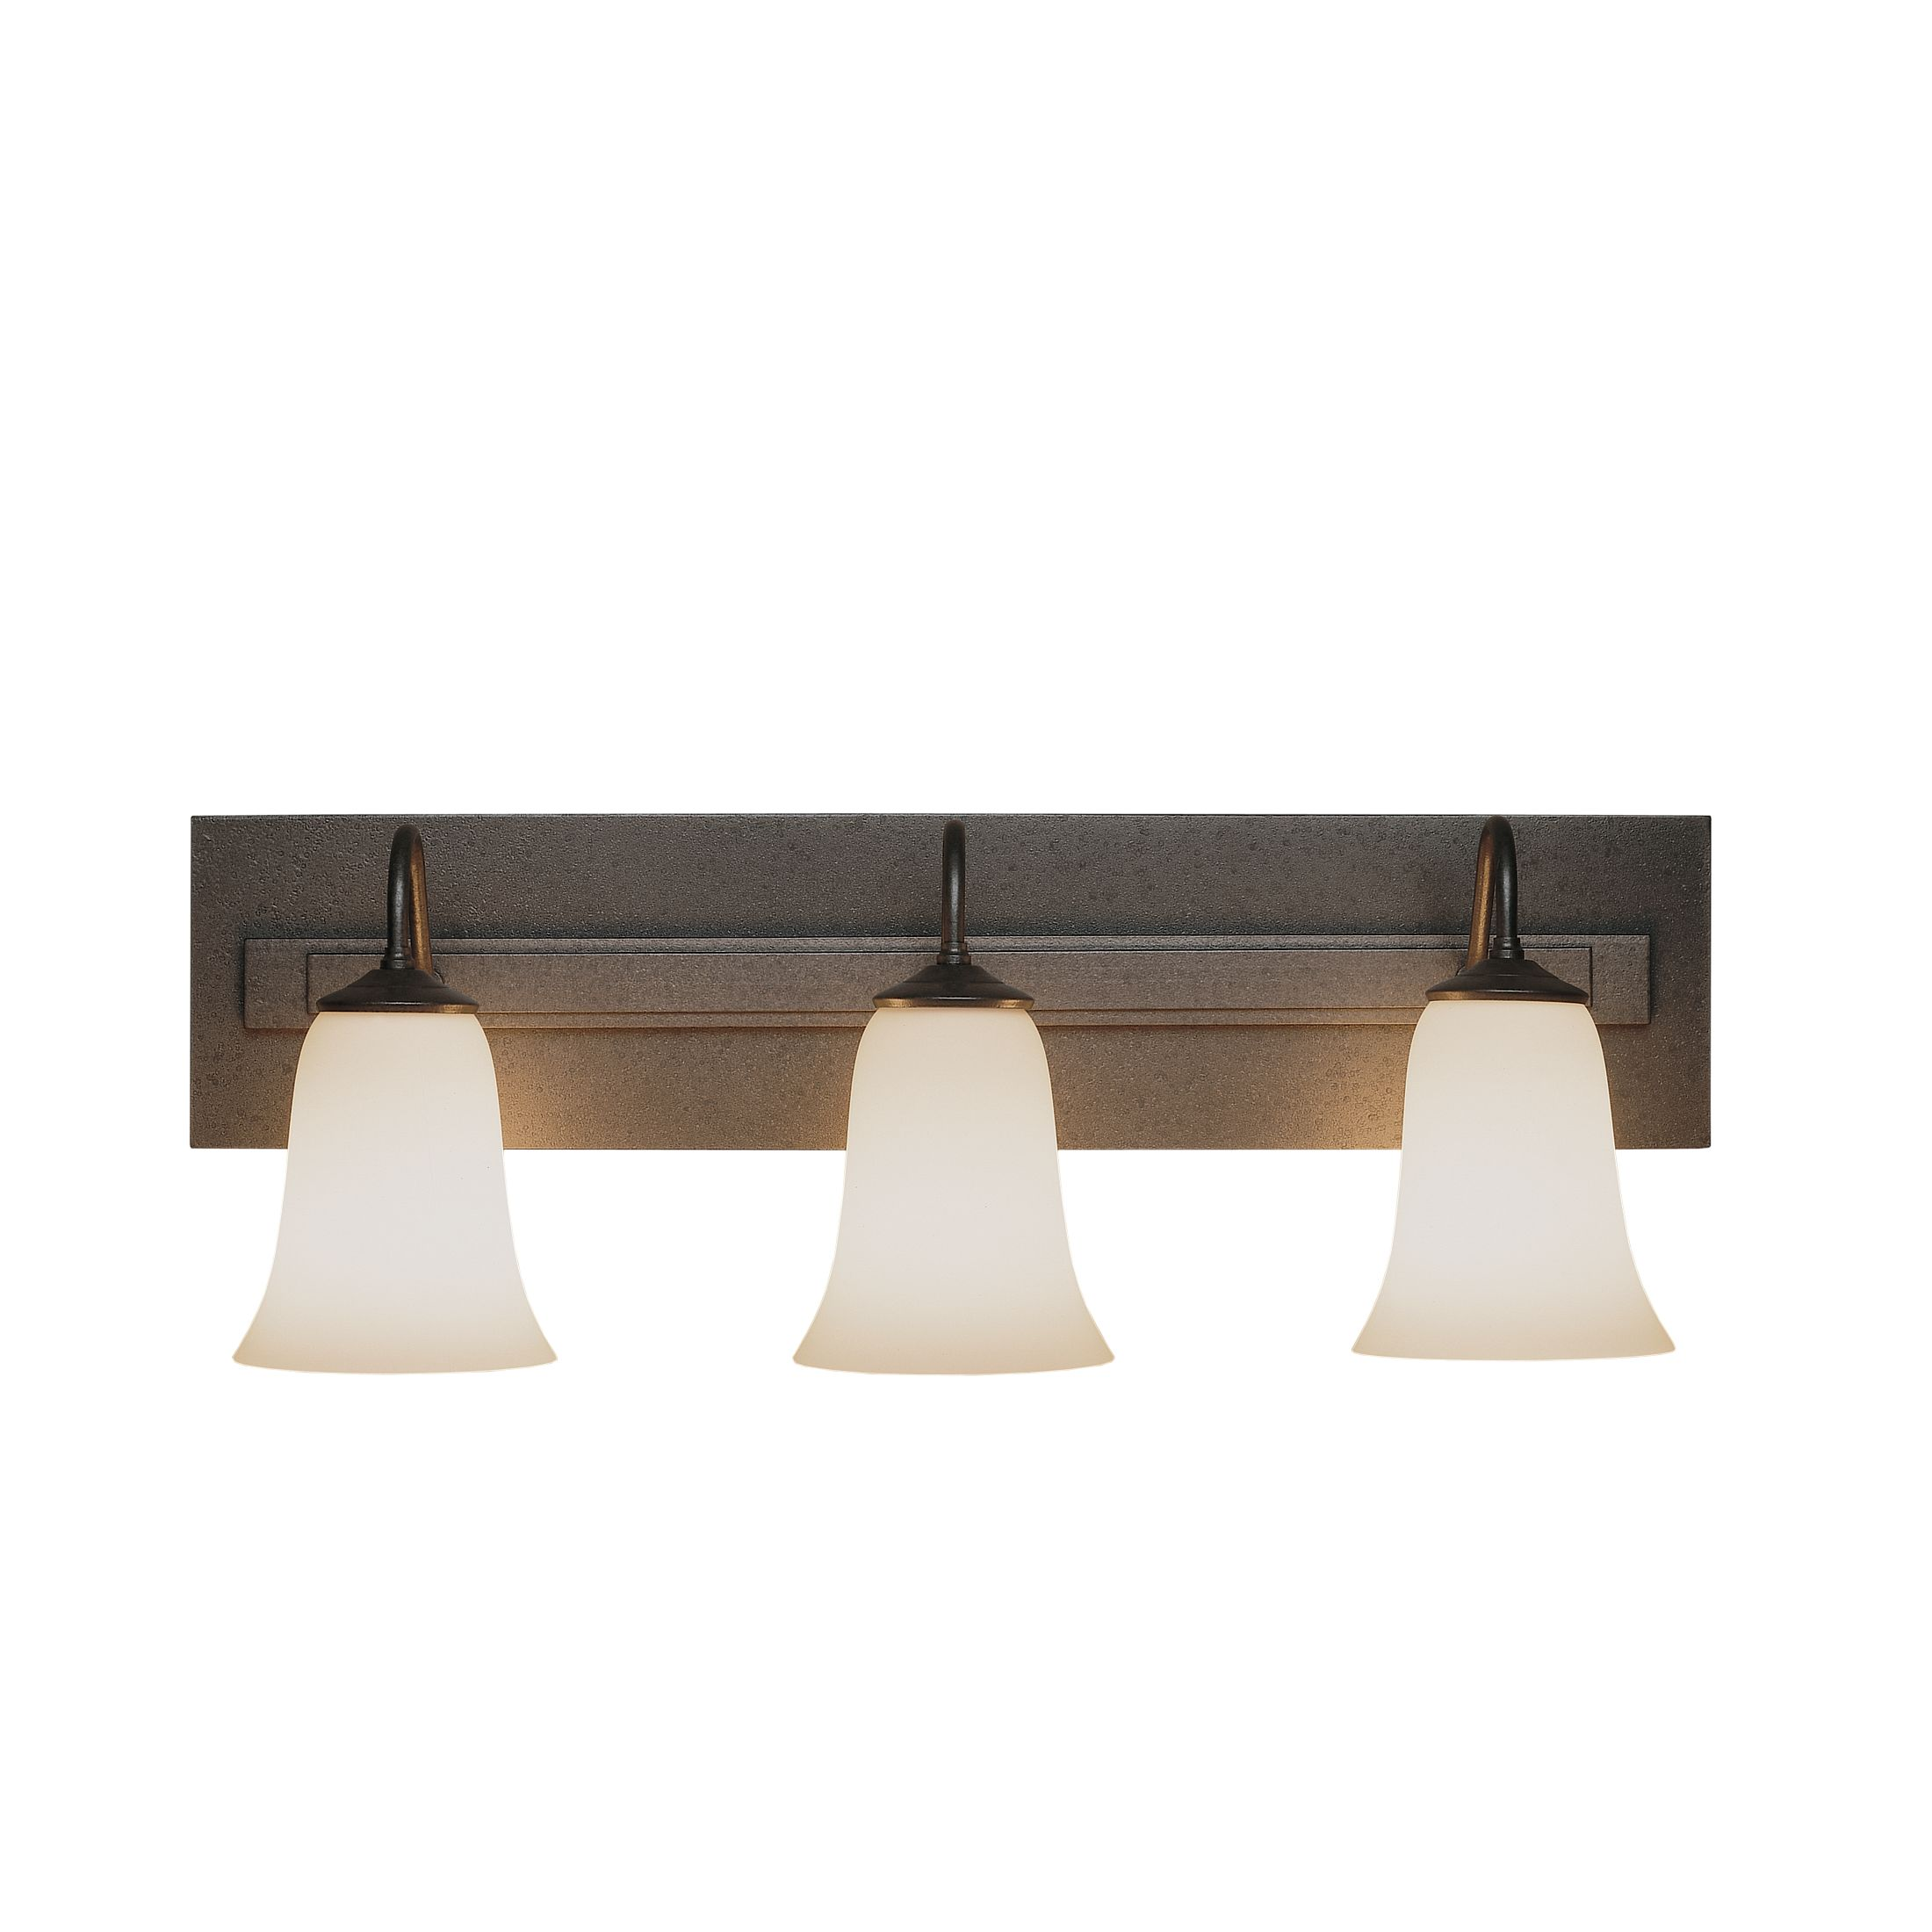 Hubbardton Forge Bathroom Lighting Part - 22: Product Detail: Traditional 3 Light Sconce